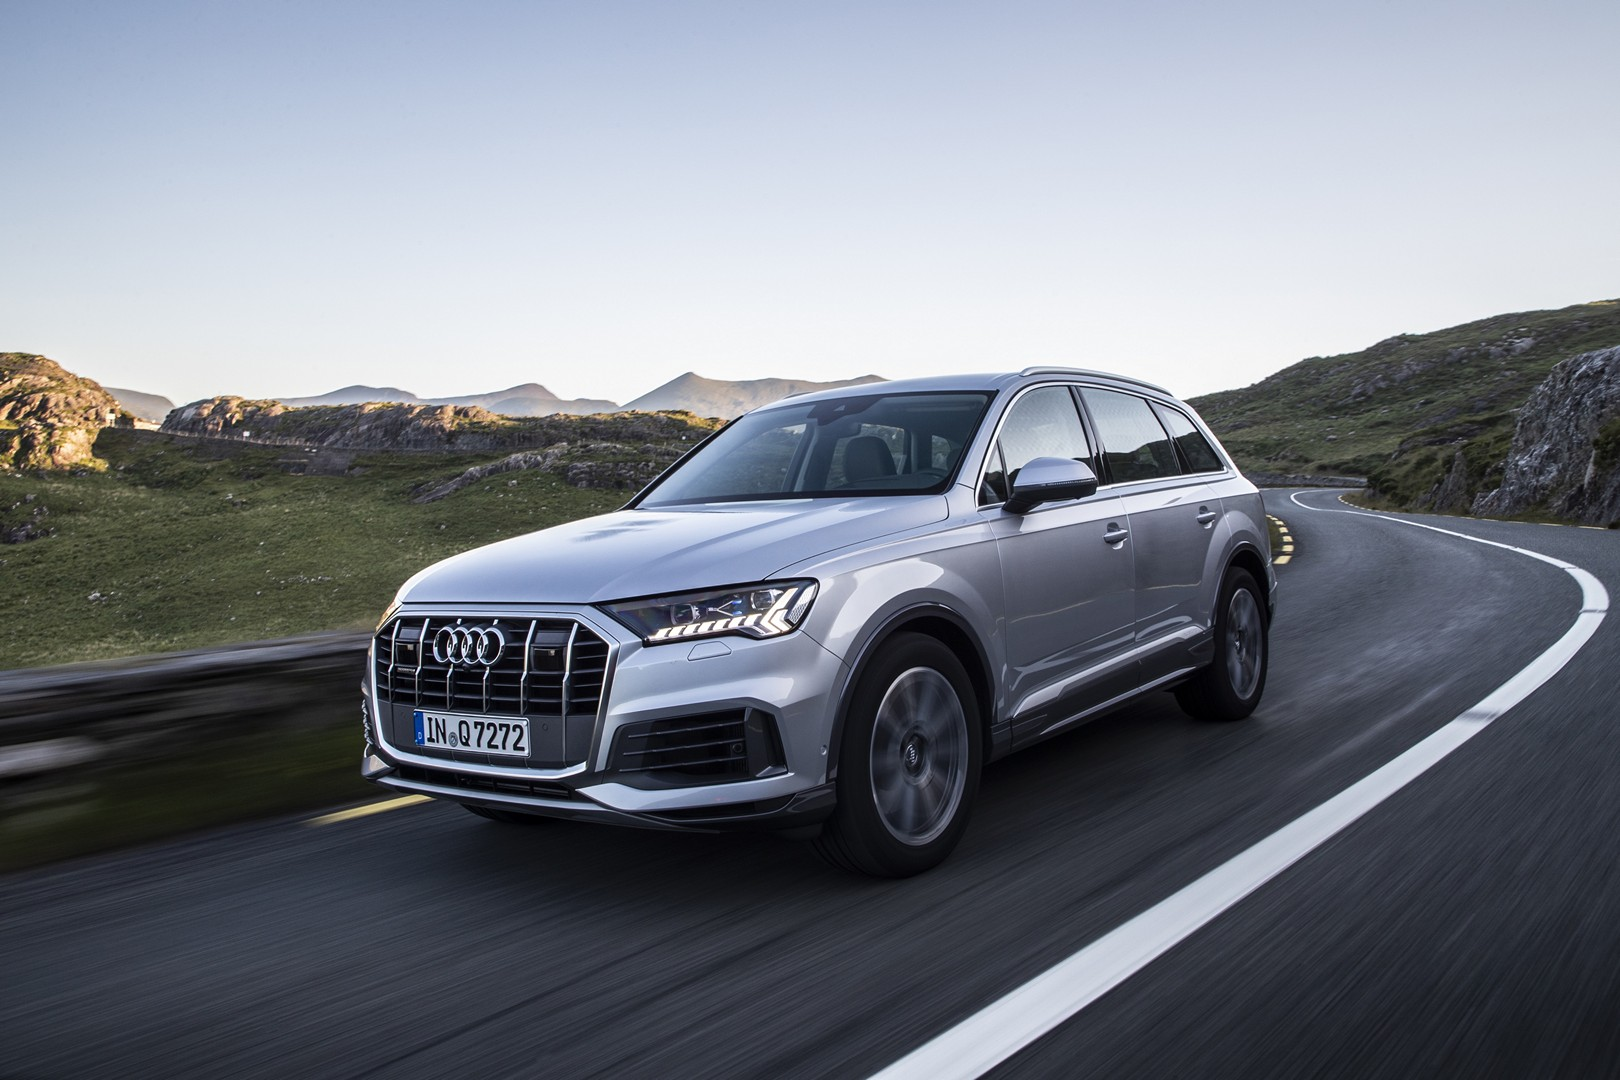 basic 2020 audi q7 facelift looks like this, is still